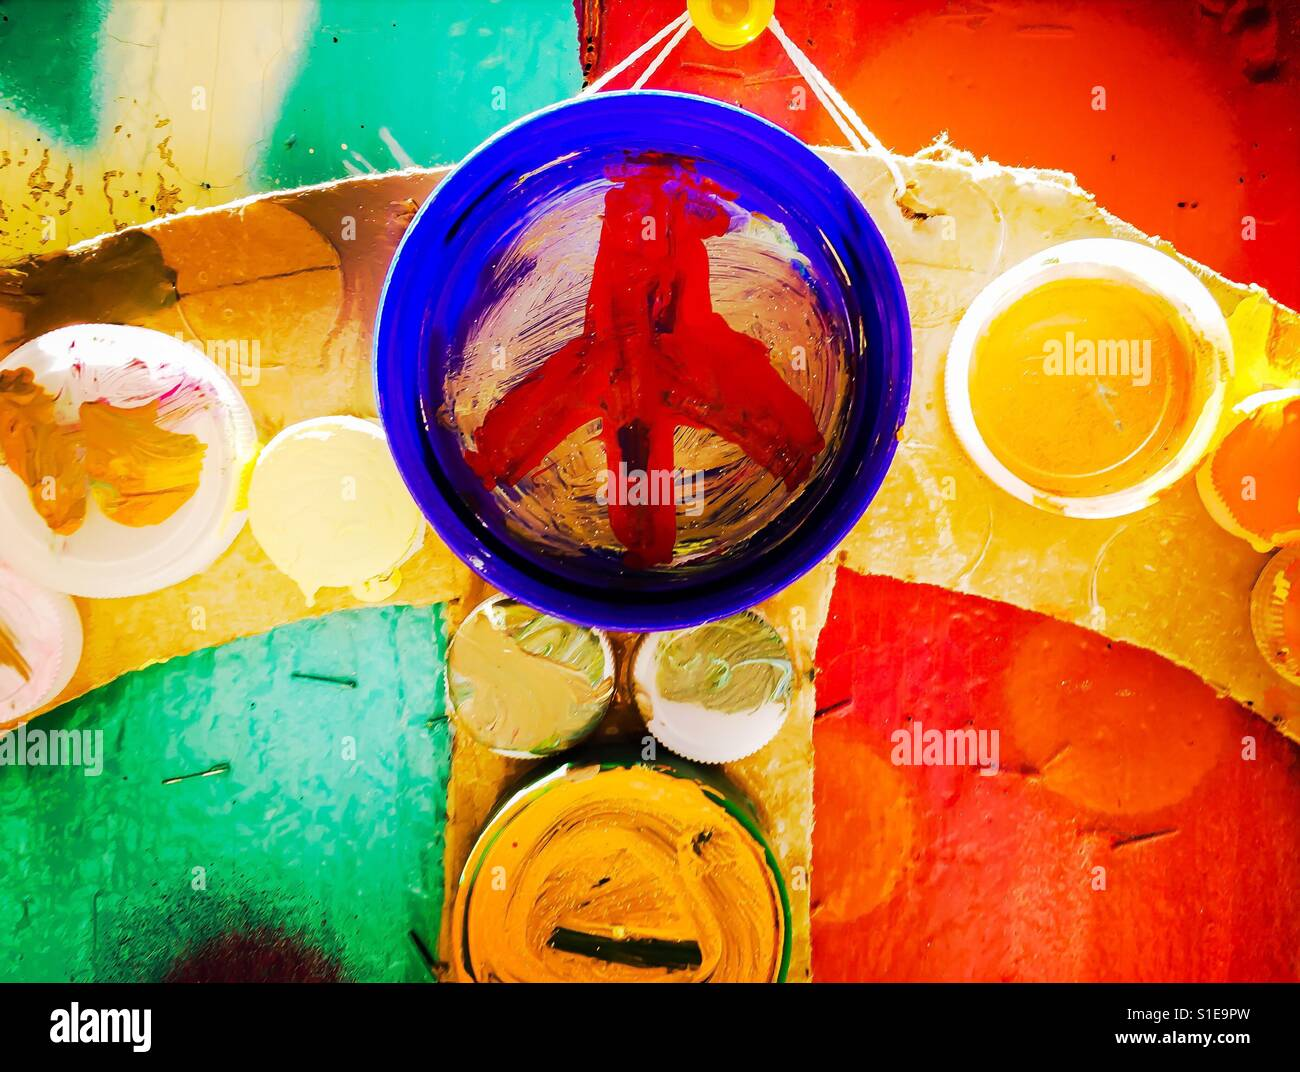 Peace - colorful hand painted peace sign on bottle cap - Stock Image